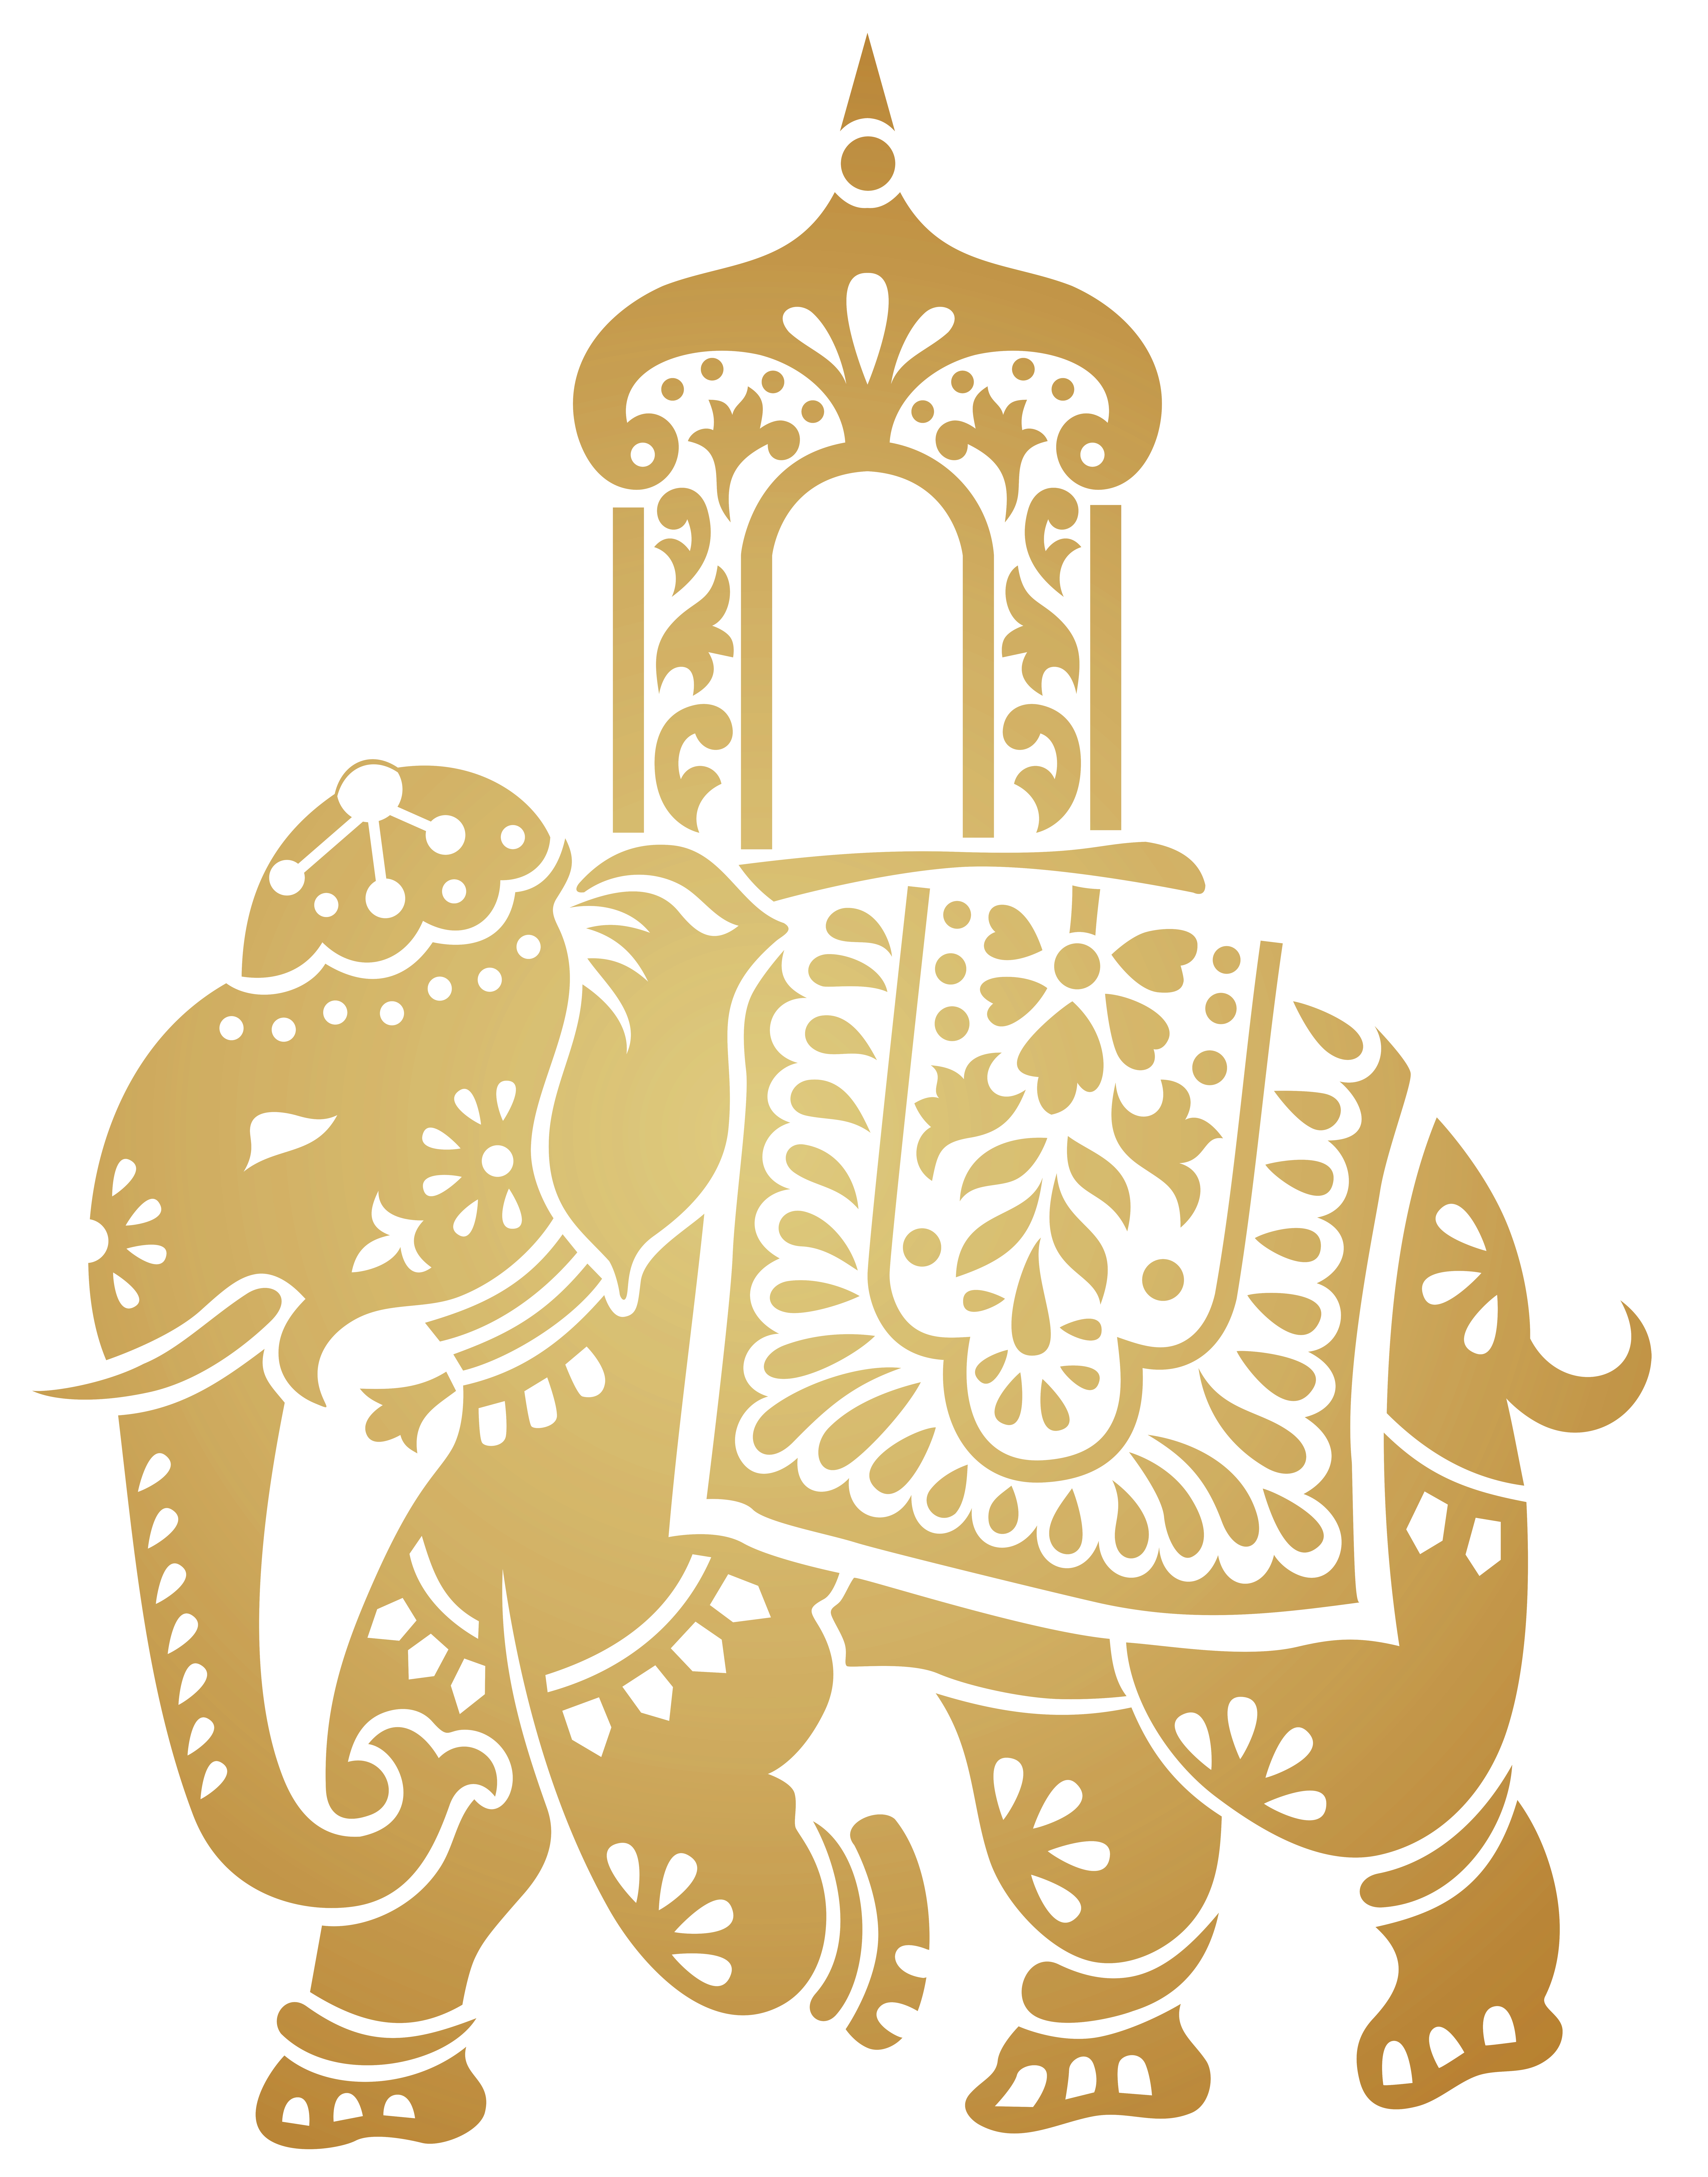 Gate clipart wedding indian. Elephant free on dumielauxepices